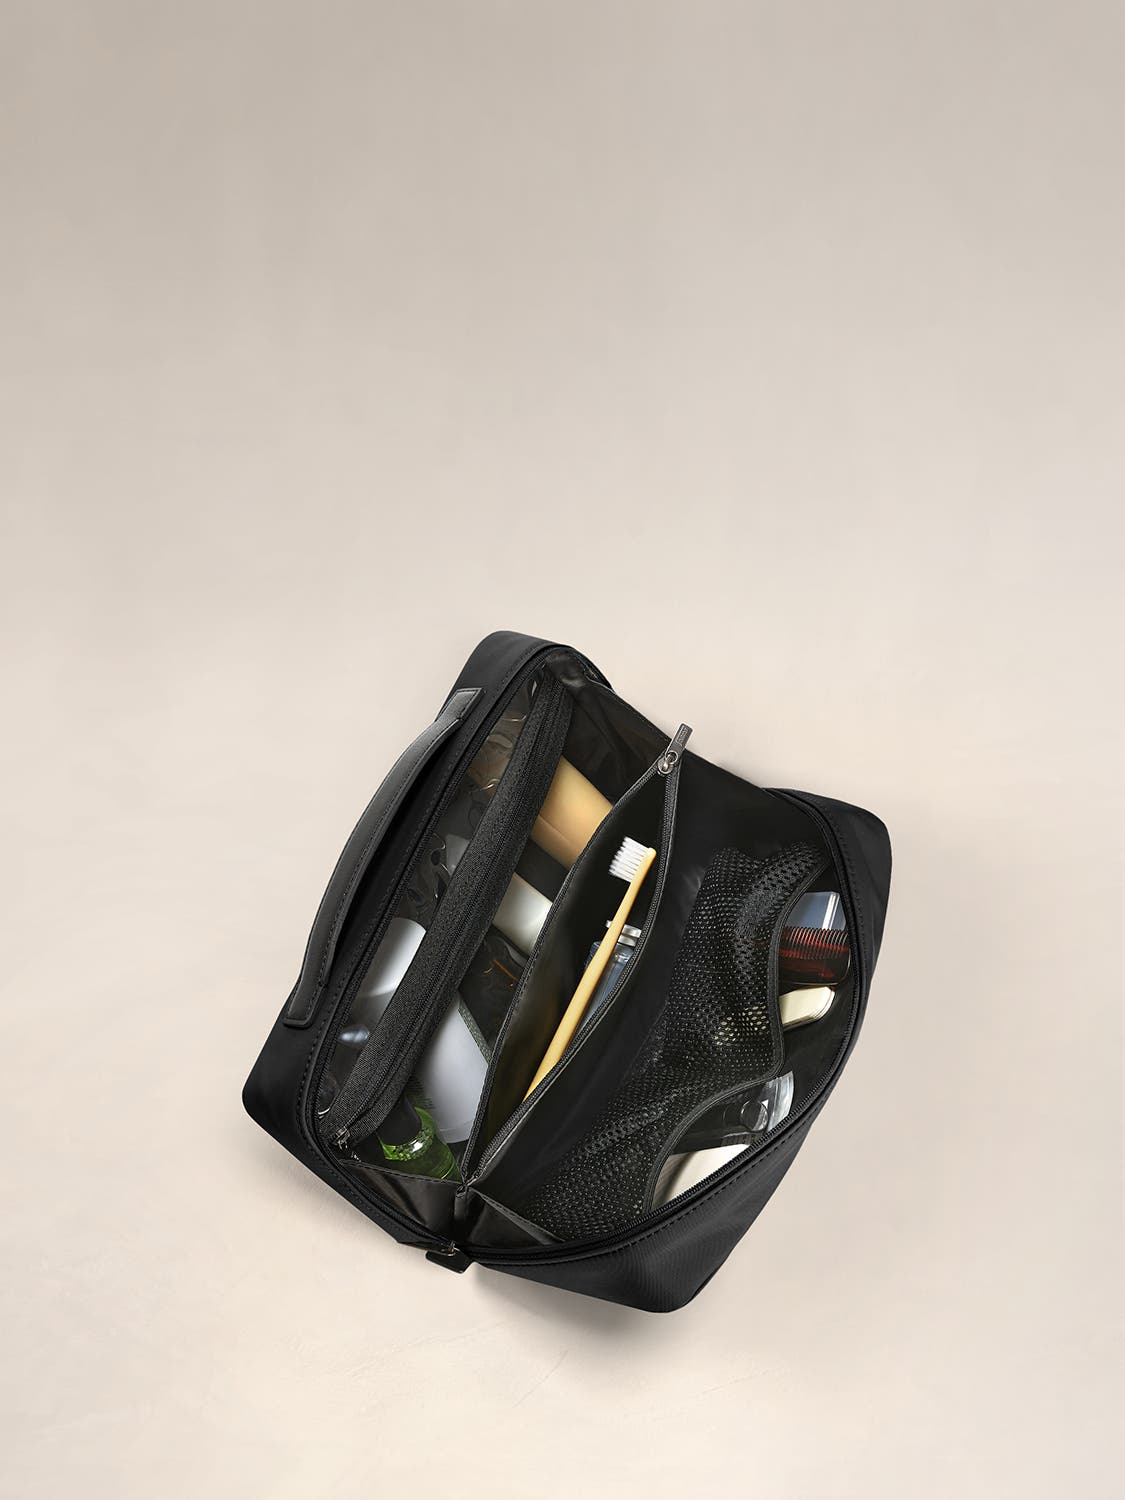 Inside view of a travel toiletry kit in black with black interior pockets full of travel toiletries.